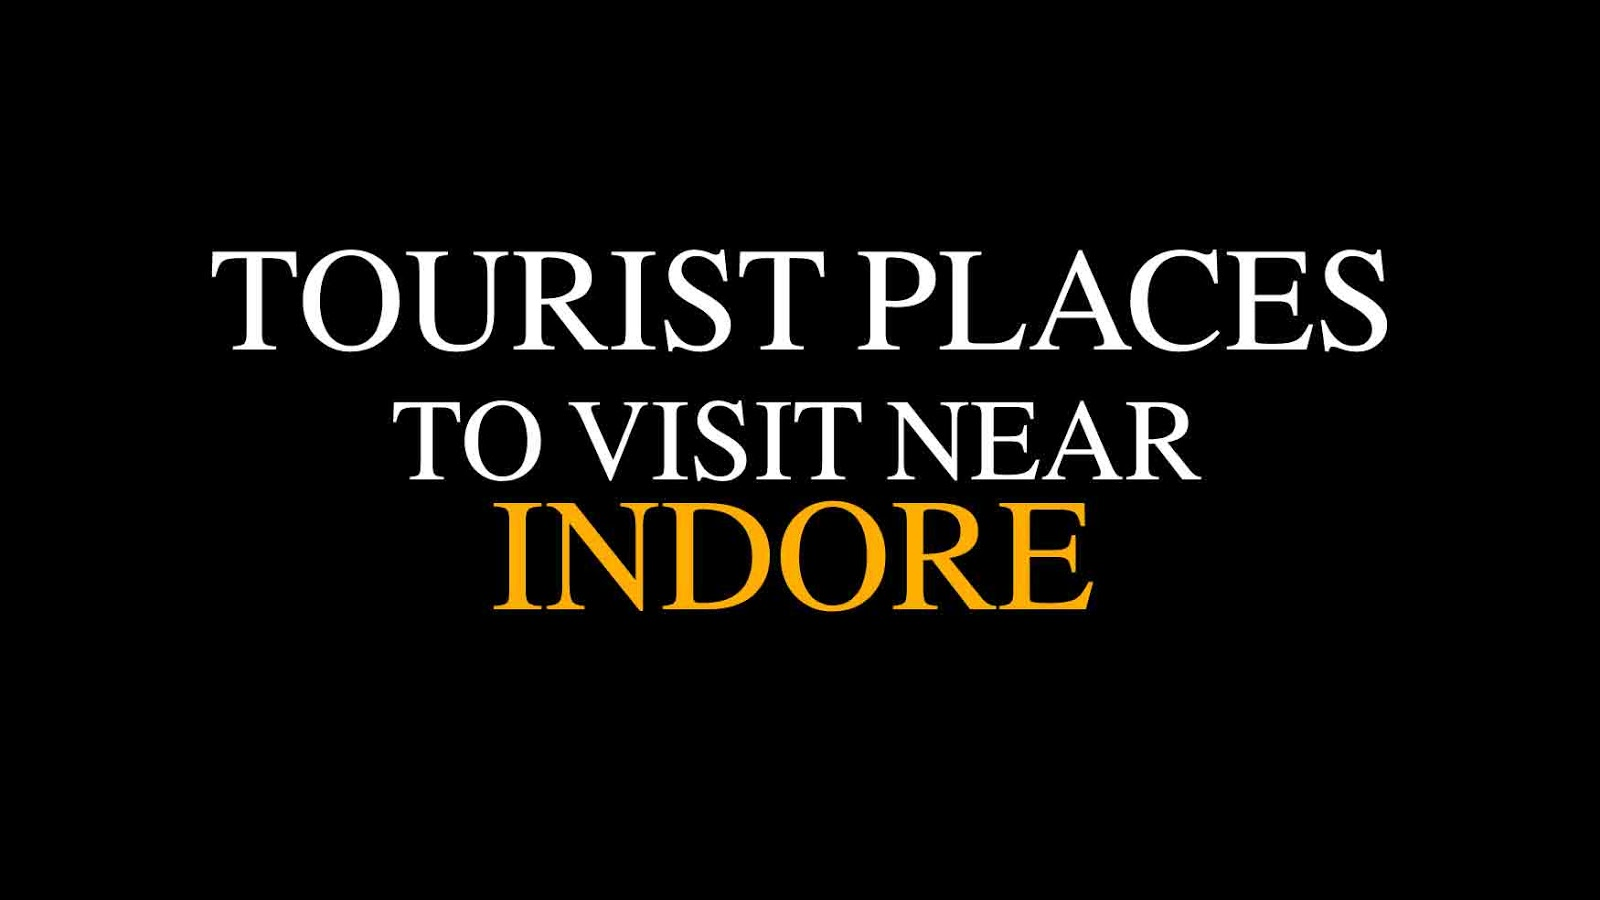 Places to visit near Indore